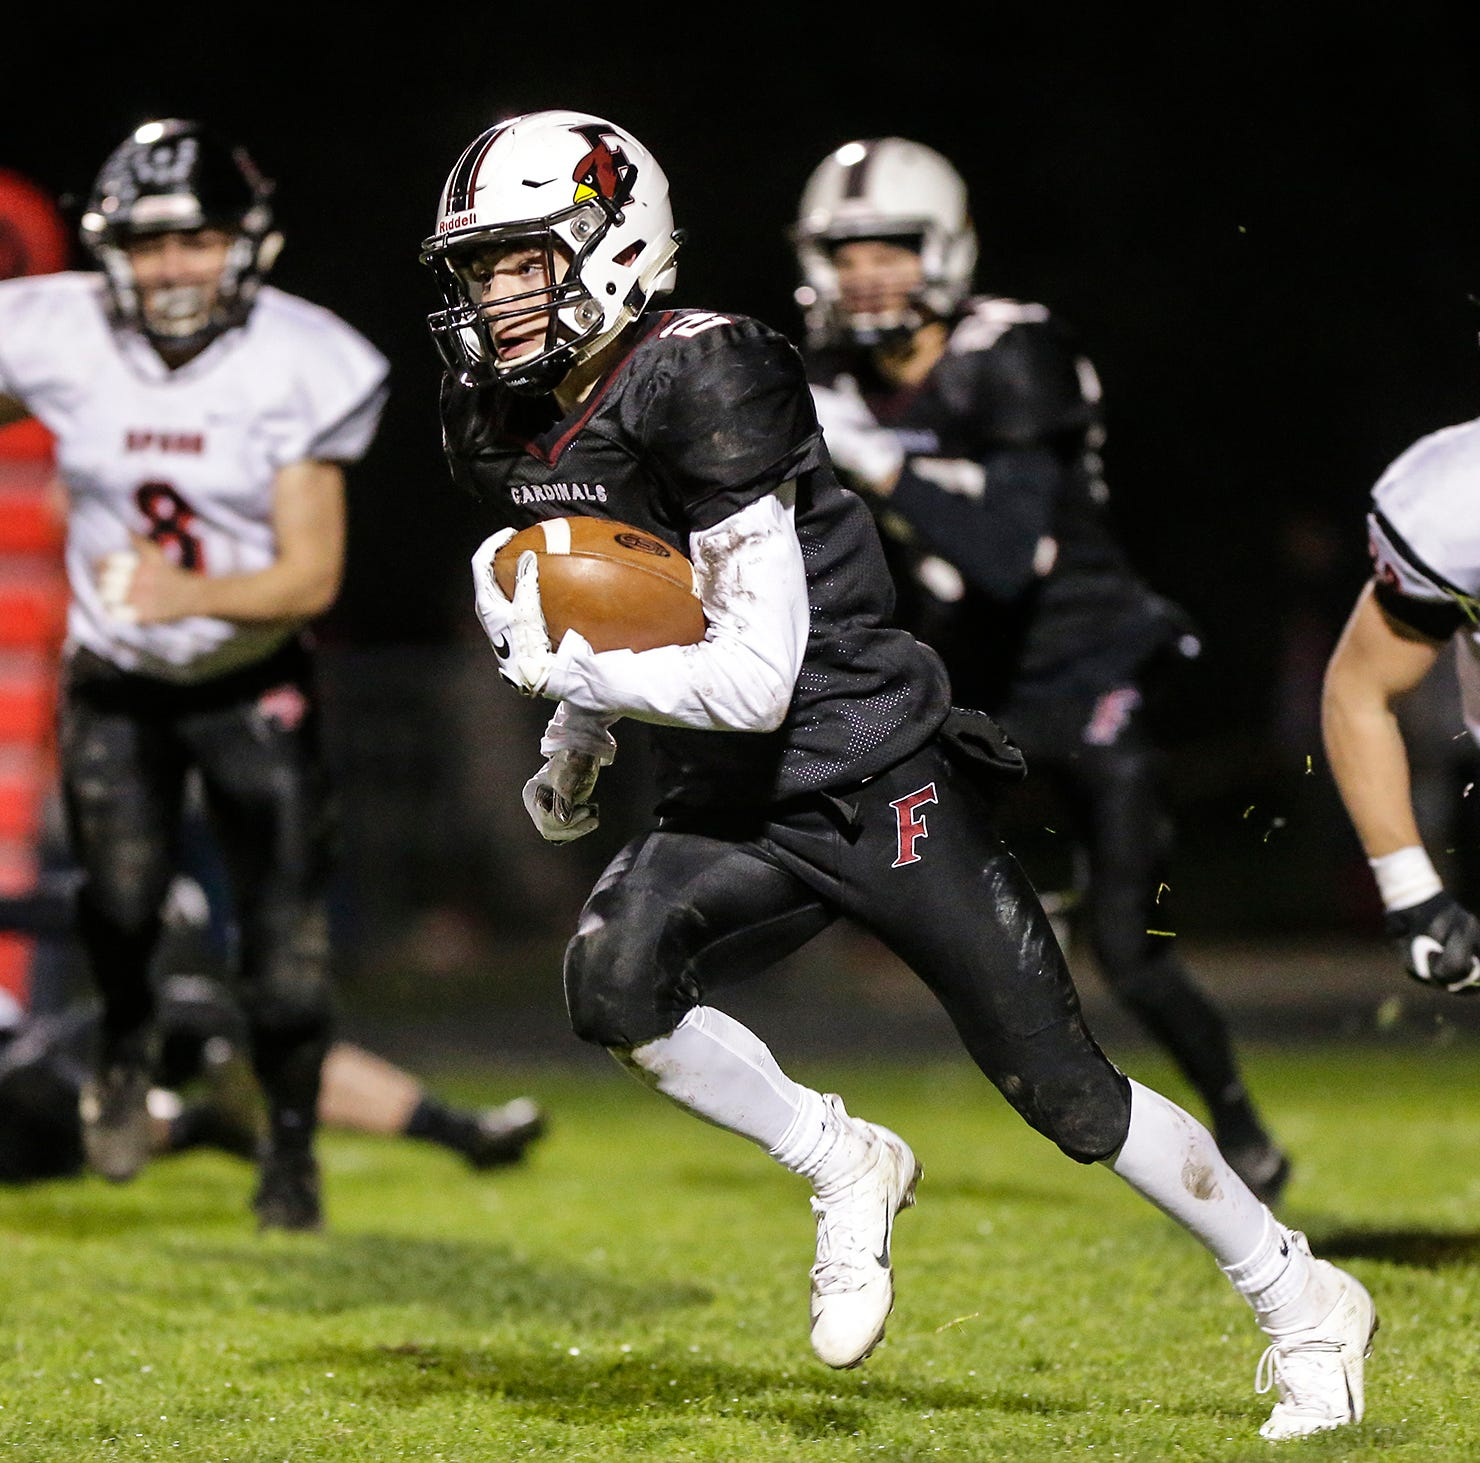 High school football: Two Fond du Lac-area teams ranked top seed in WIAA football playoffs